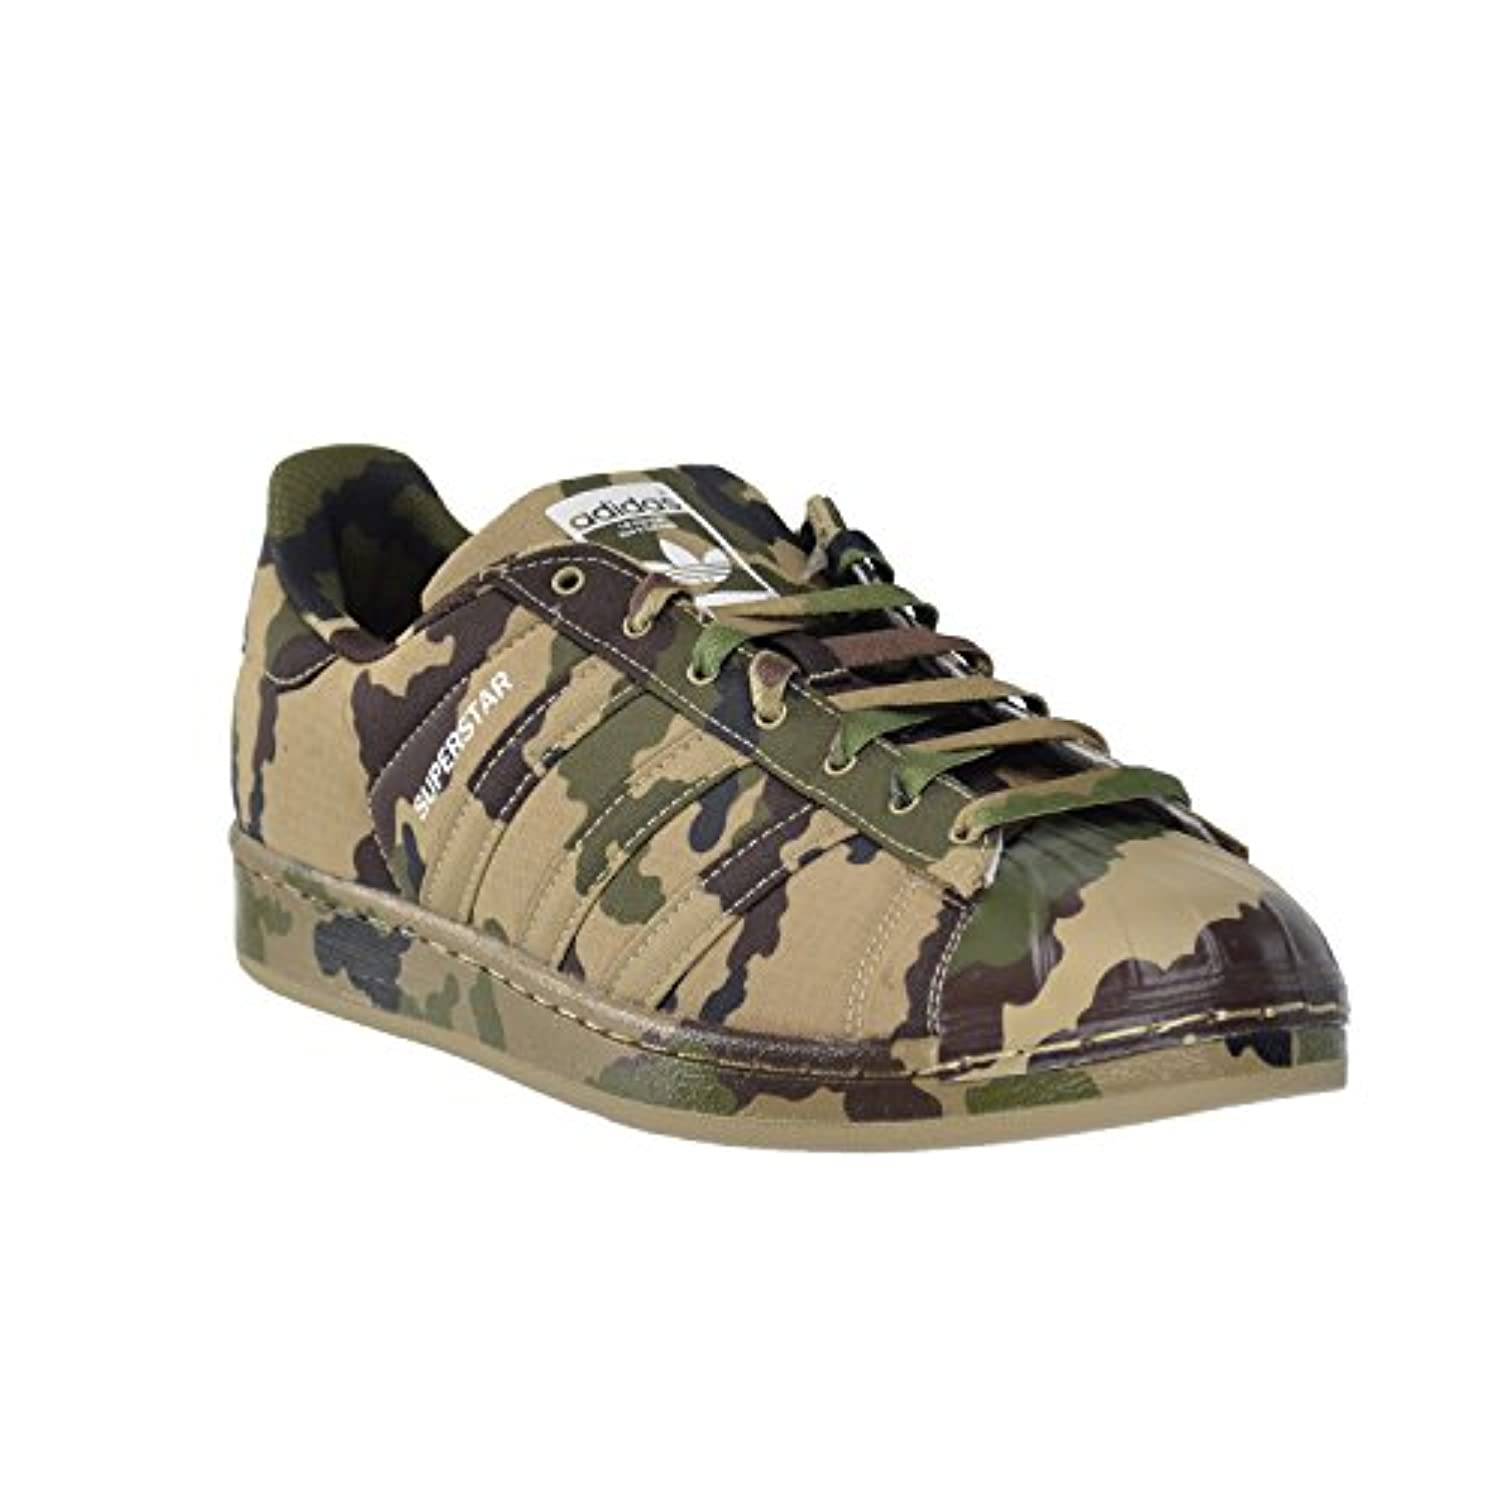 new products 3cd88 c2a69 Adidas Superstar Graphic Pack Hemp/Camo/ Black/Ftw White b35403 (9.5 D(M)  US) | $54.99 - Buy today!